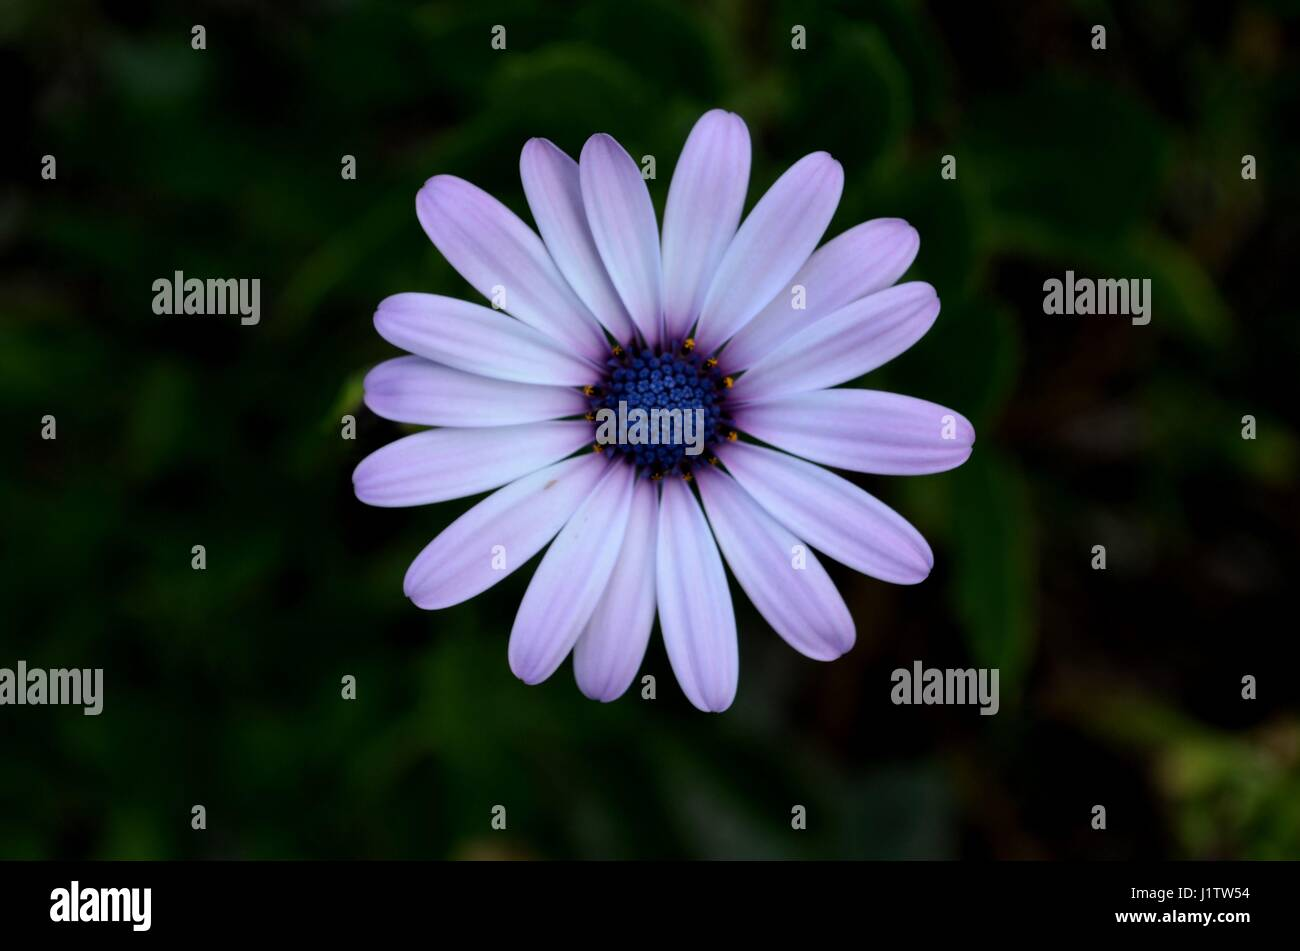 Light Purple Daisy Flower In Afternoon Shadow Stock Photo 138844192